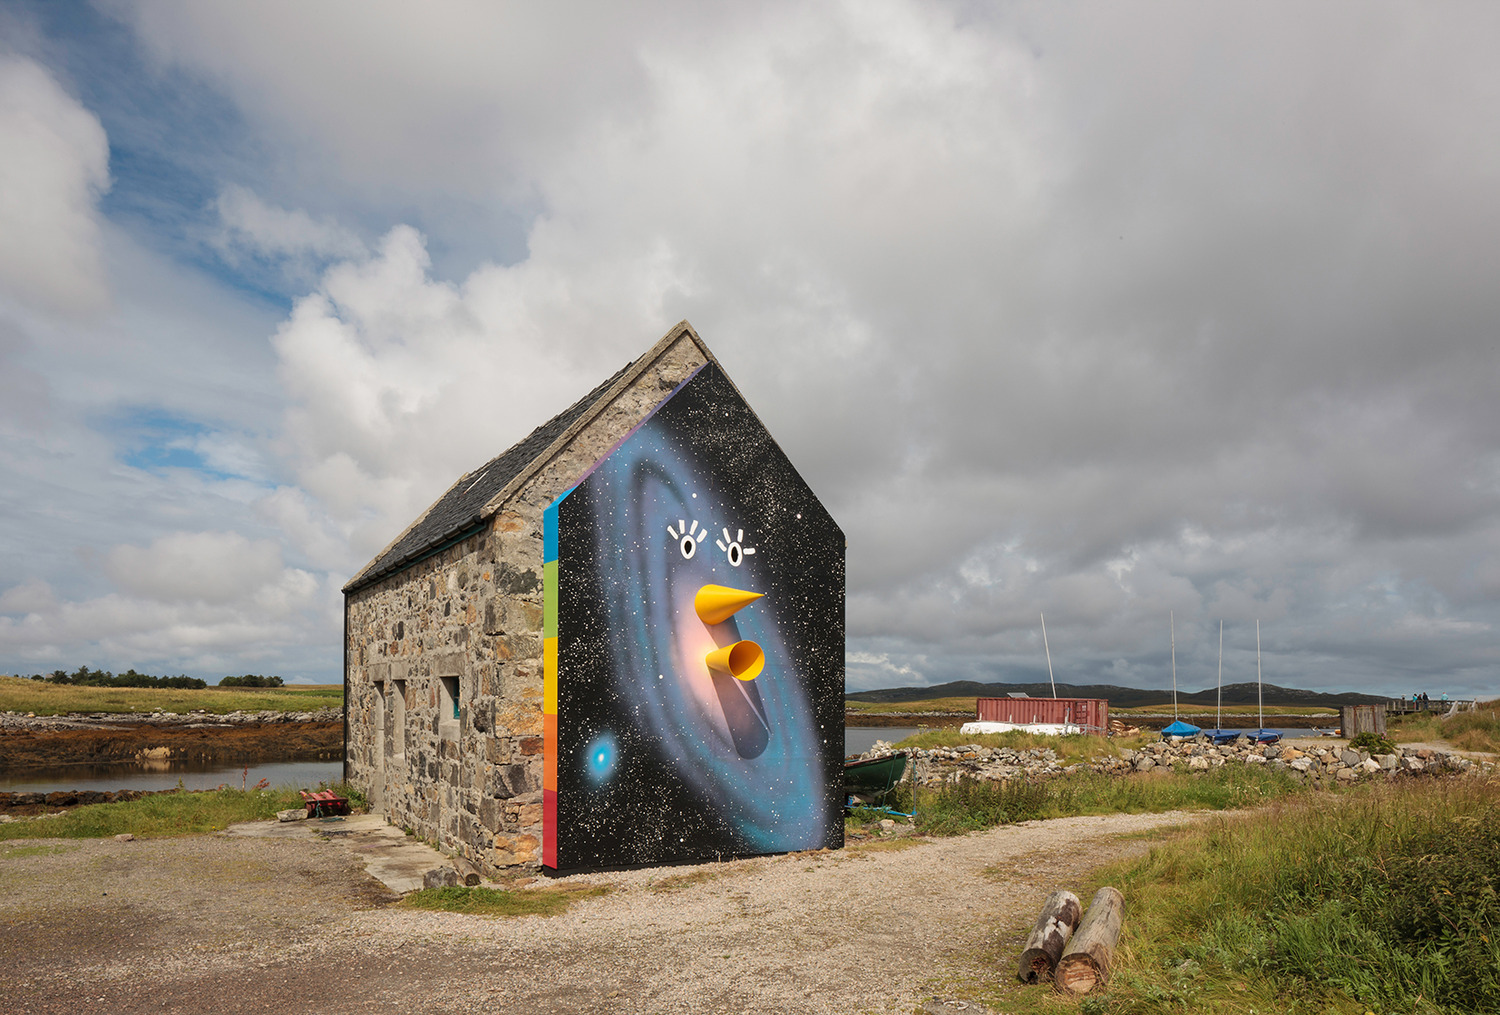 Joanne Tatham & Tom O'Sullivan, Are you LOCATIONALIZED, 2014, Gable end wall, plywood, timber, paint, audio recital, Dimensions variable, Exterior view, The Dairy, Lochmaddy, North Uist, 2014